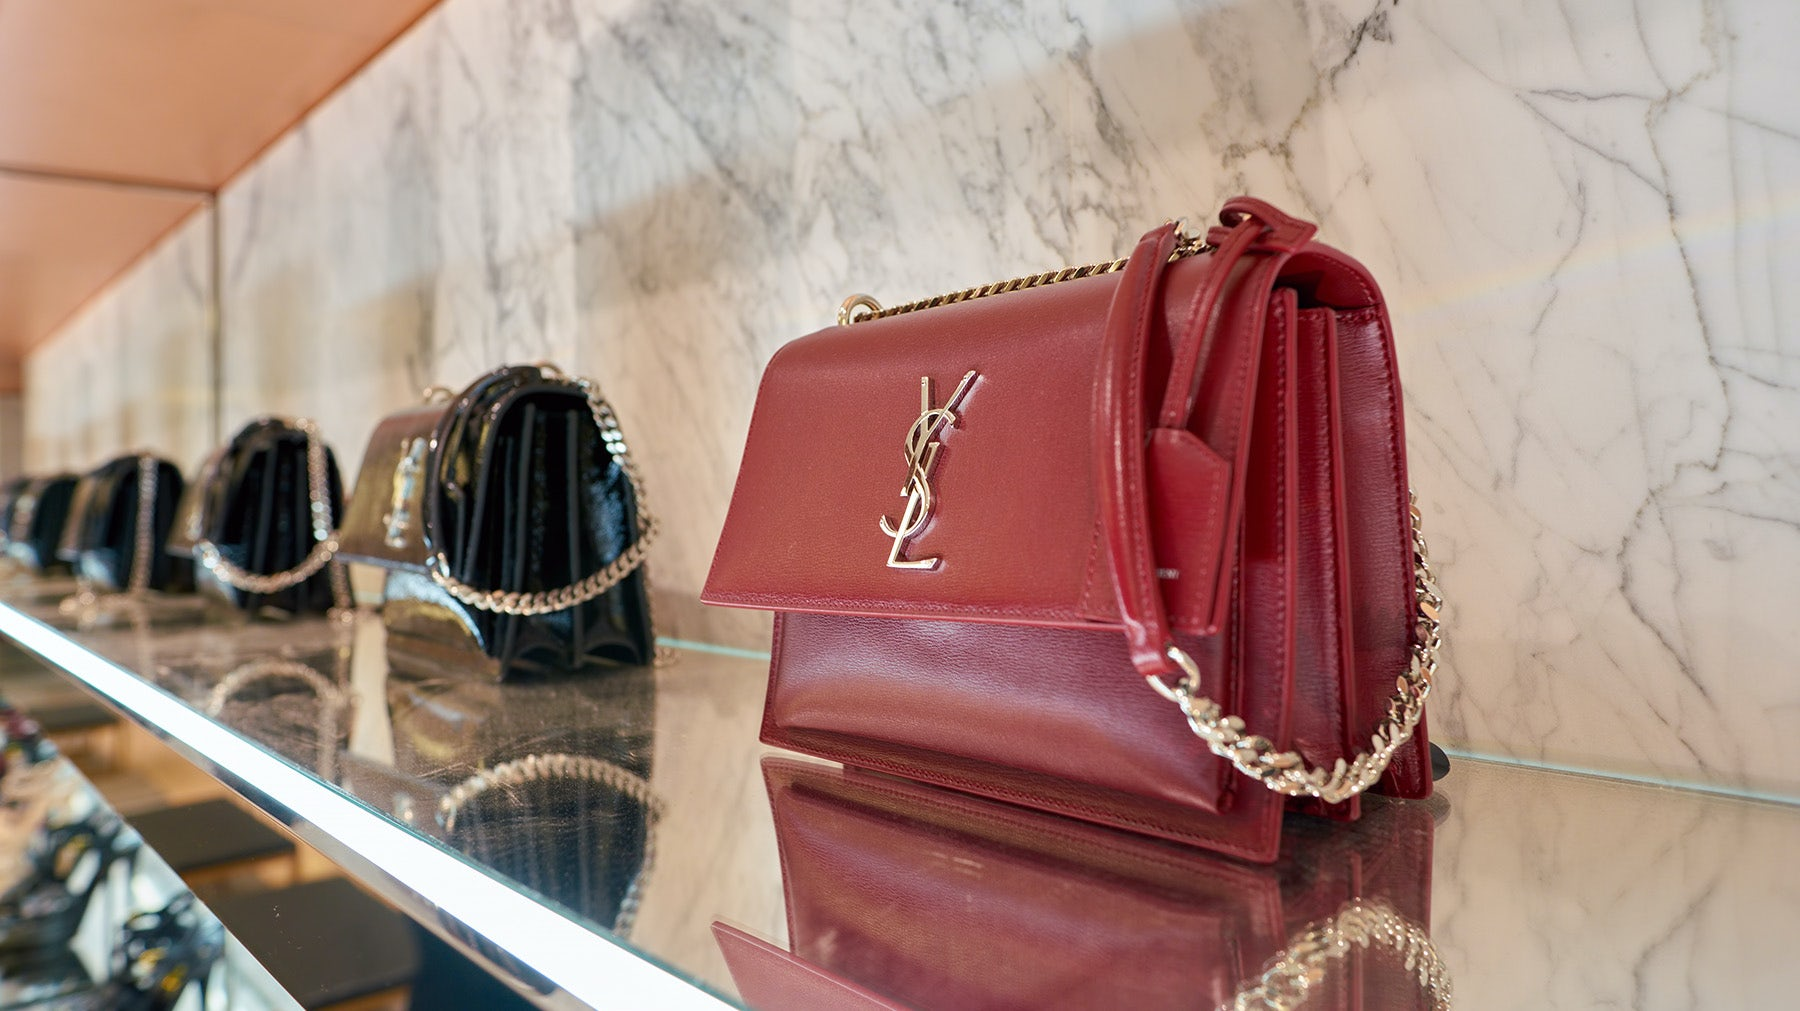 Saint Laurent Launches on JD.com Luxury Platform, Toplife